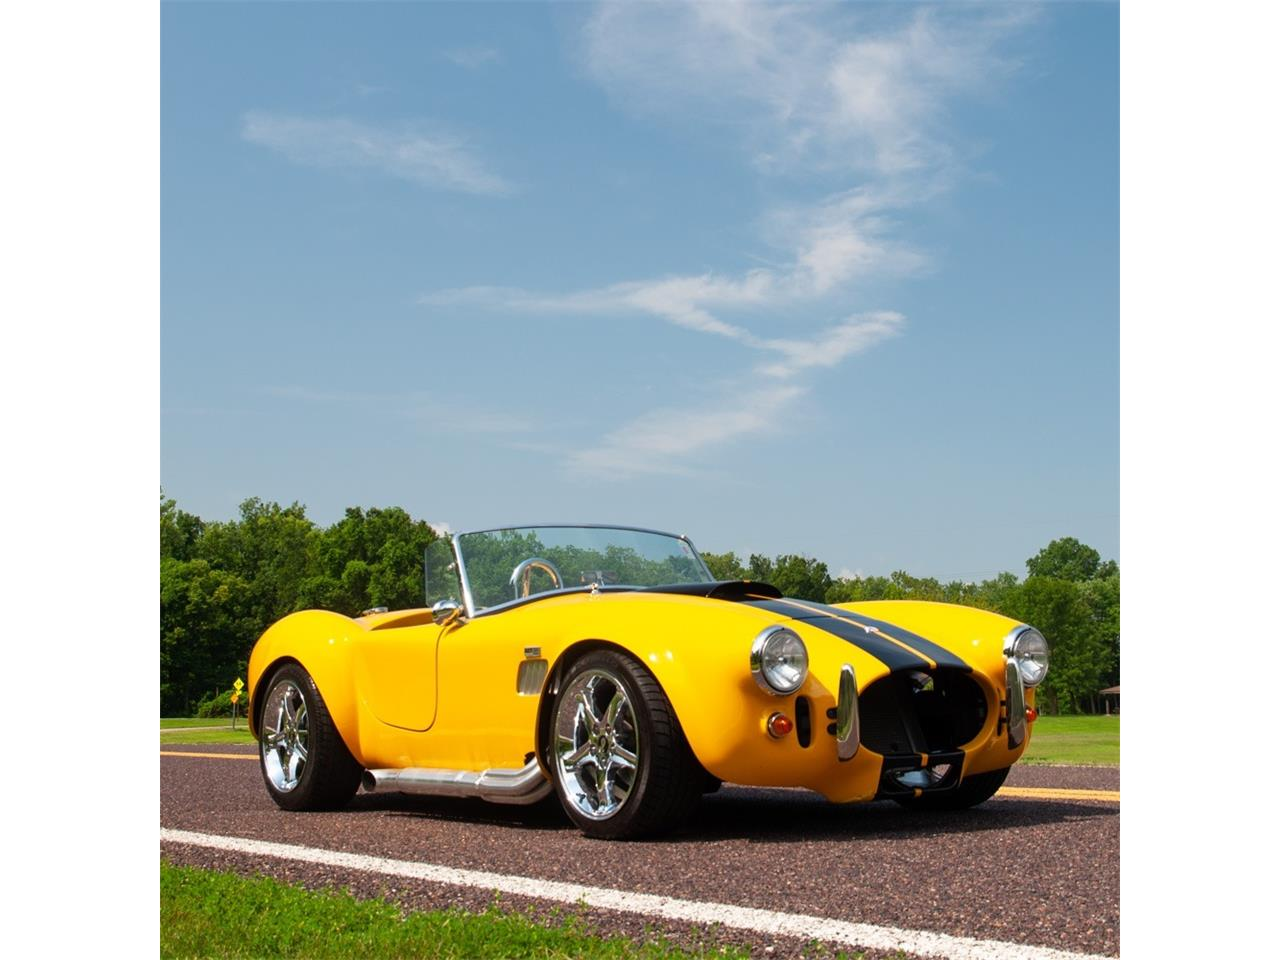 2003 Special Construction Cobra Replica for sale in St. Louis, MO